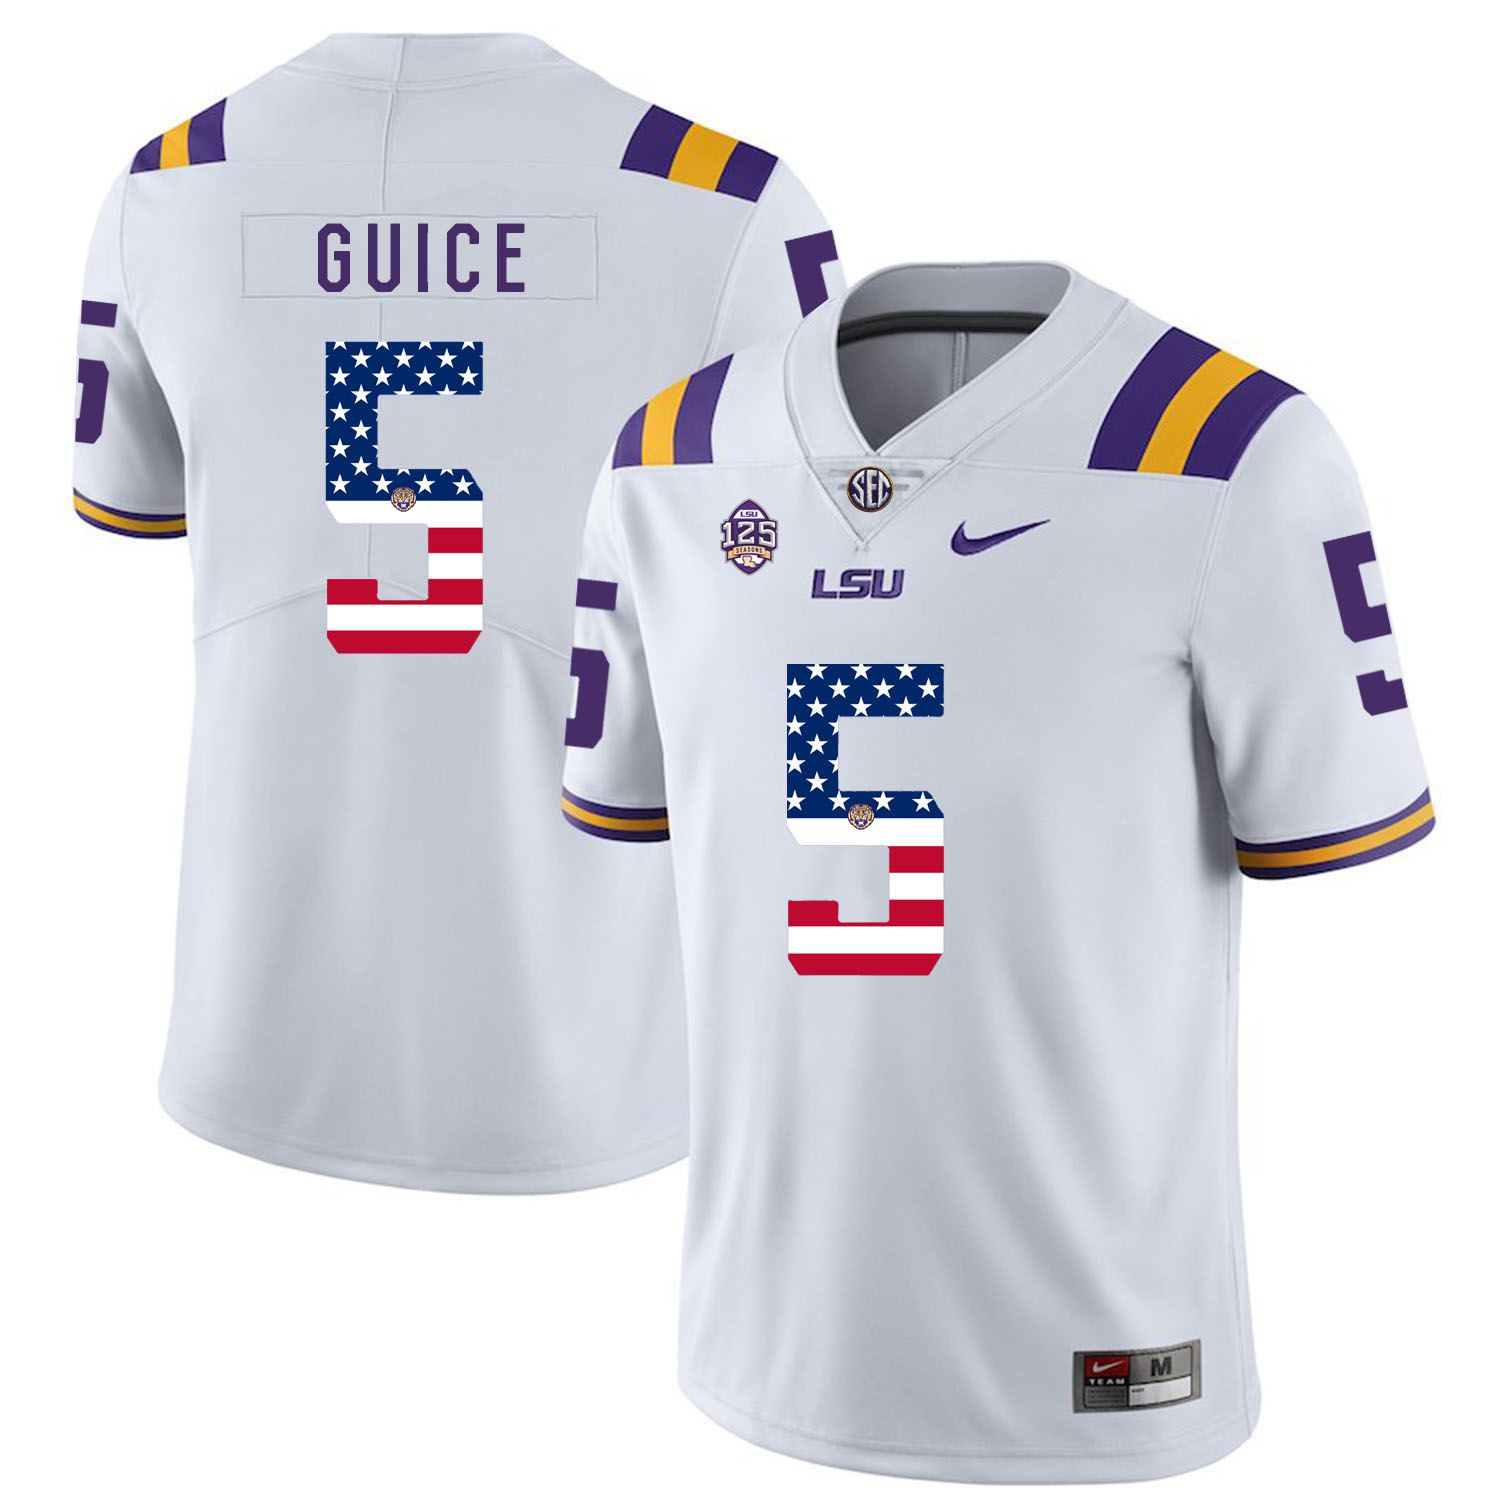 Men LSU Tigers 5 Guice White Flag Customized NCAA Jerseys